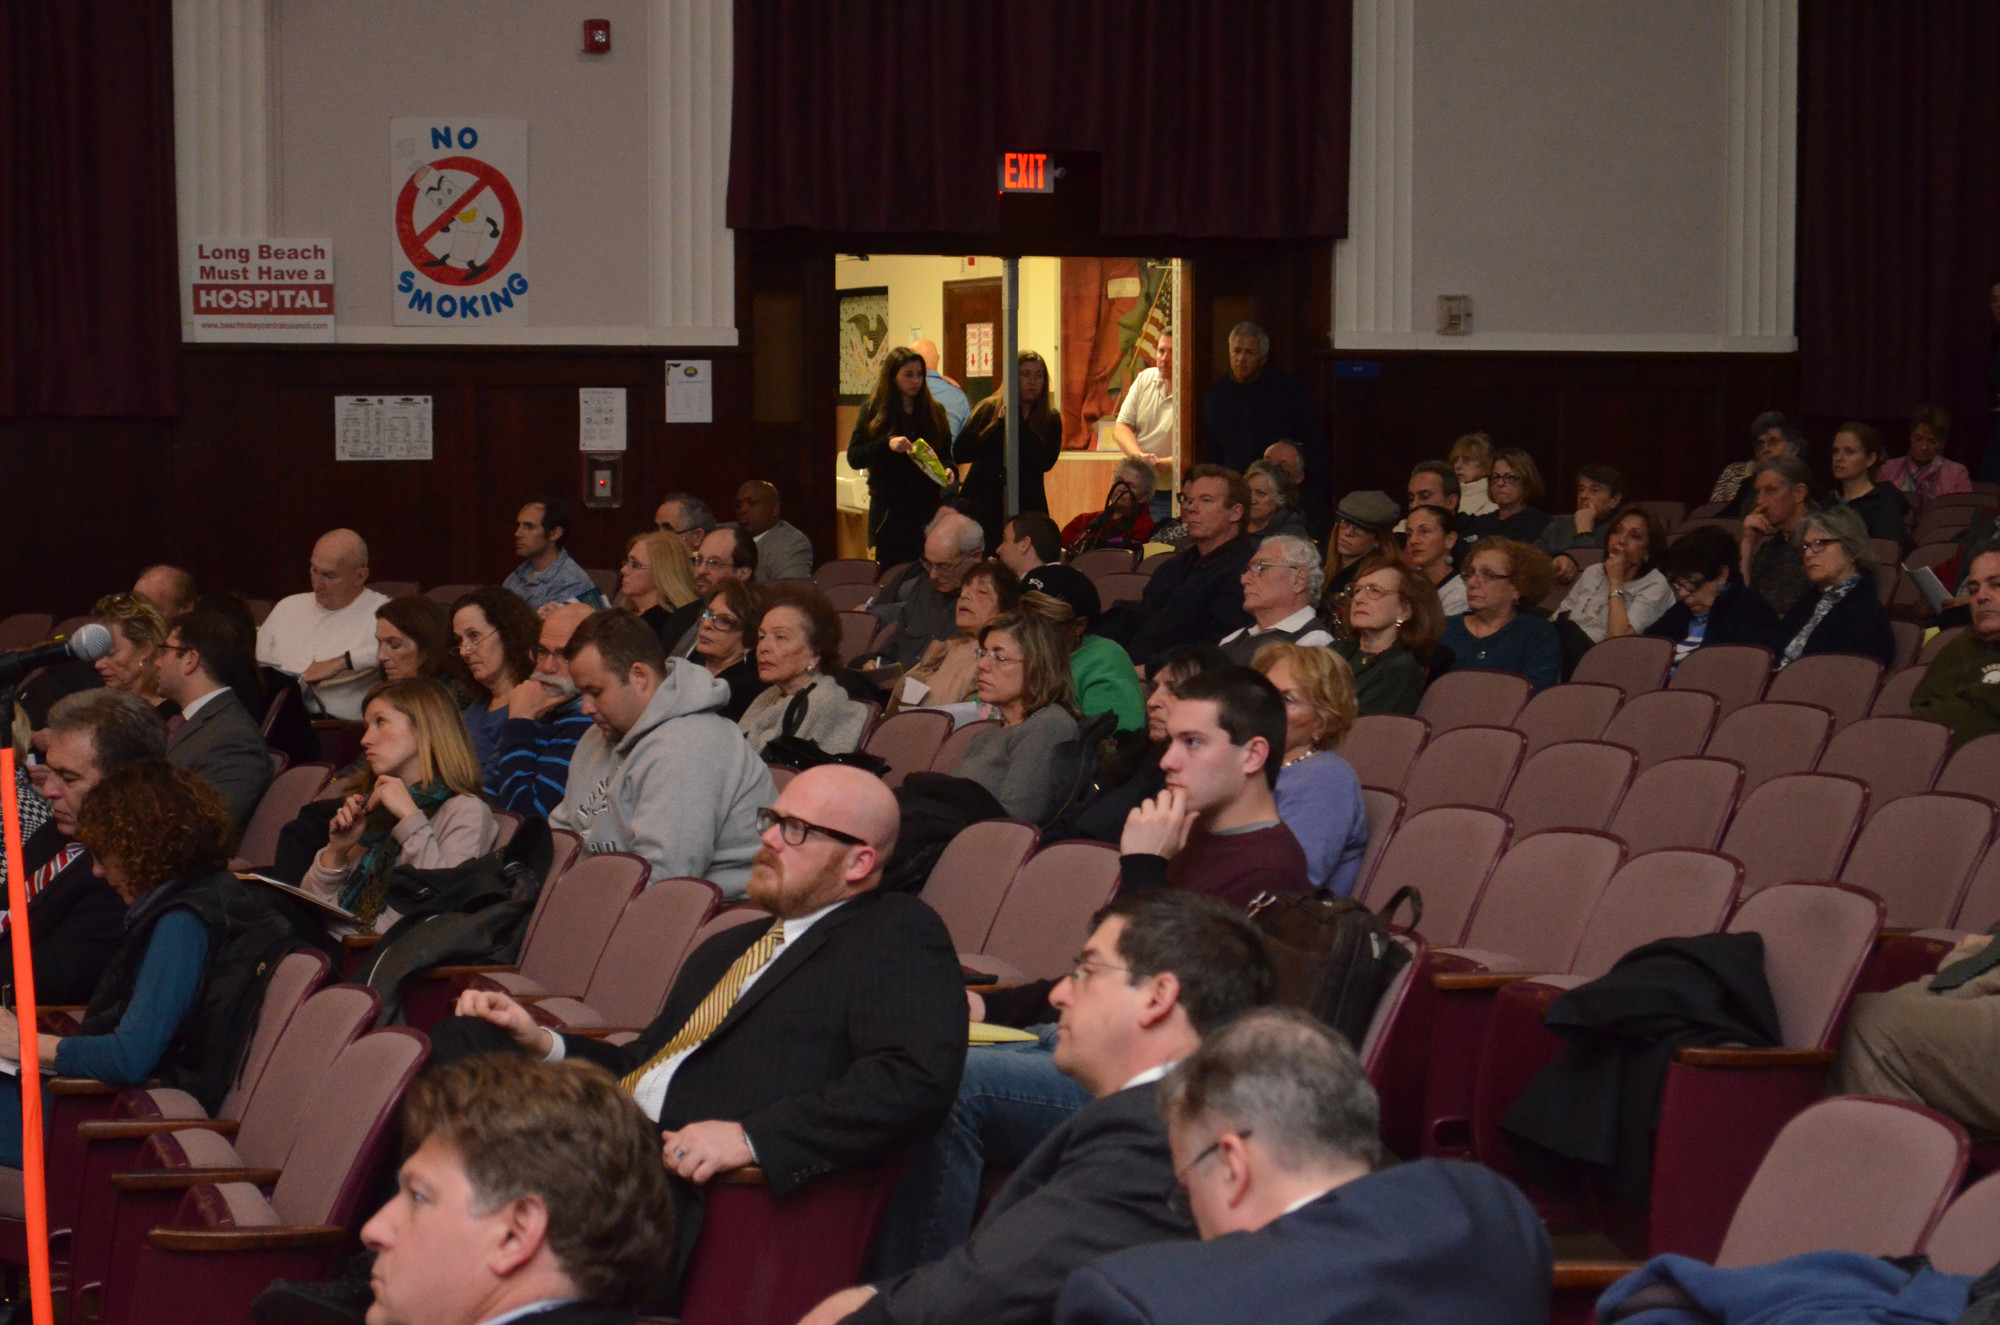 More than 100 residents and local officials attended Monday's forum at Lindell Elementary School.